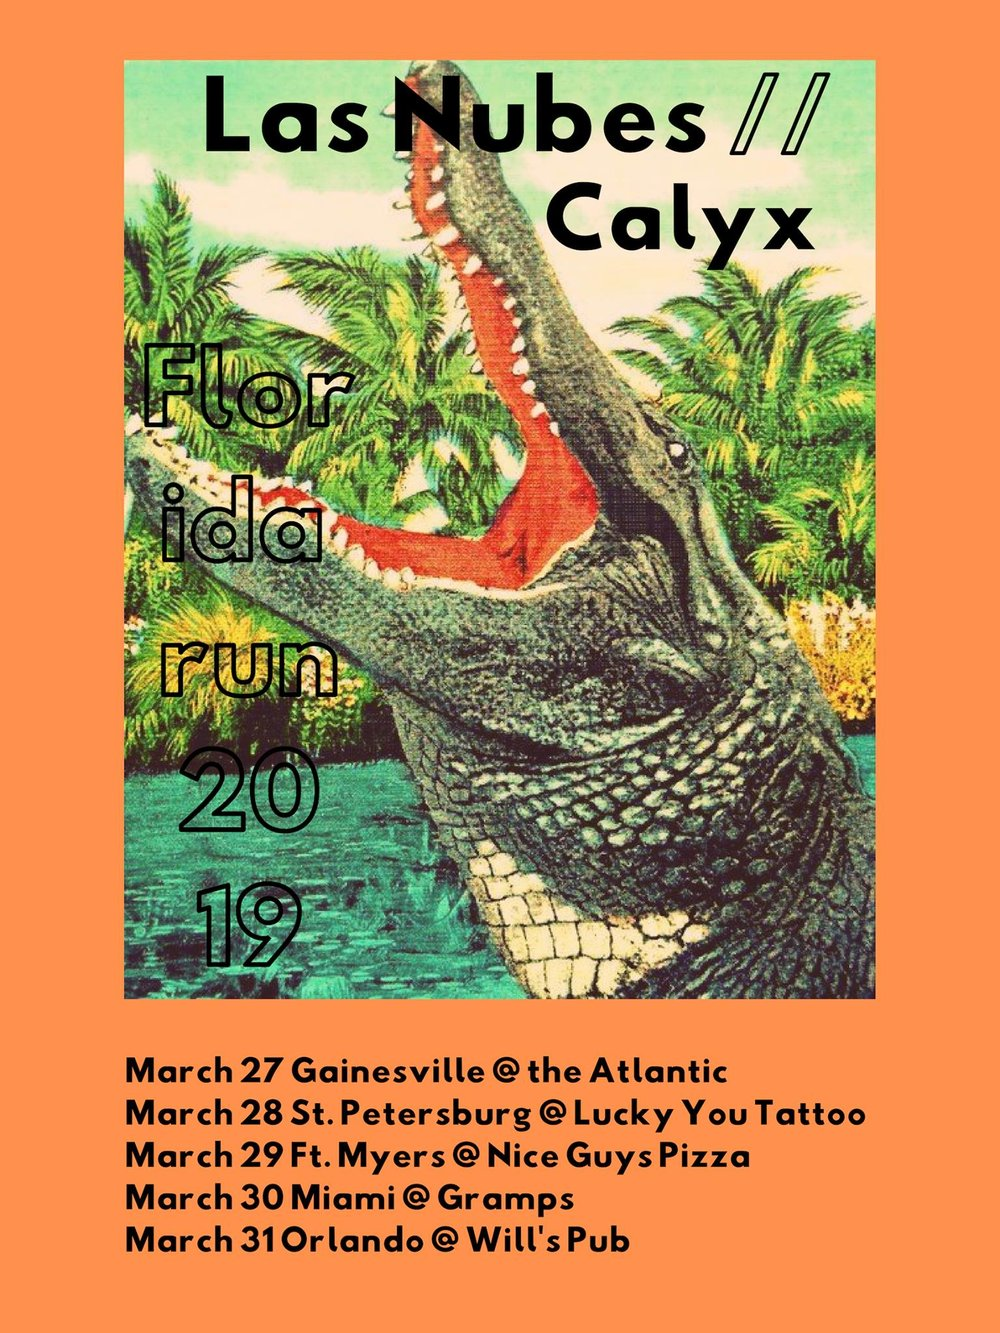 Wed, March 27th  Las Nubes (Miami)  https://lasnubes.bandcamp.com/   https://www.facebook.com/lasnubesmiami   https://www.instagram.com/lasnubesmiami/   Calyx (Pittsburgh)   https://calyxpgh.bandcamp.com/   https://www.facebook.com/calyxpgh/   https://www.instagram.com/calyxpgh/   Bitemarks (Gainesville)  https://bitemarksgnv.bandcamp.com/   https://www.facebook.com/BiteMarksGNV/   https://www.instagram.com/bitemarksfl/   Open at 9pm / Show starts at 10! $5 at the door